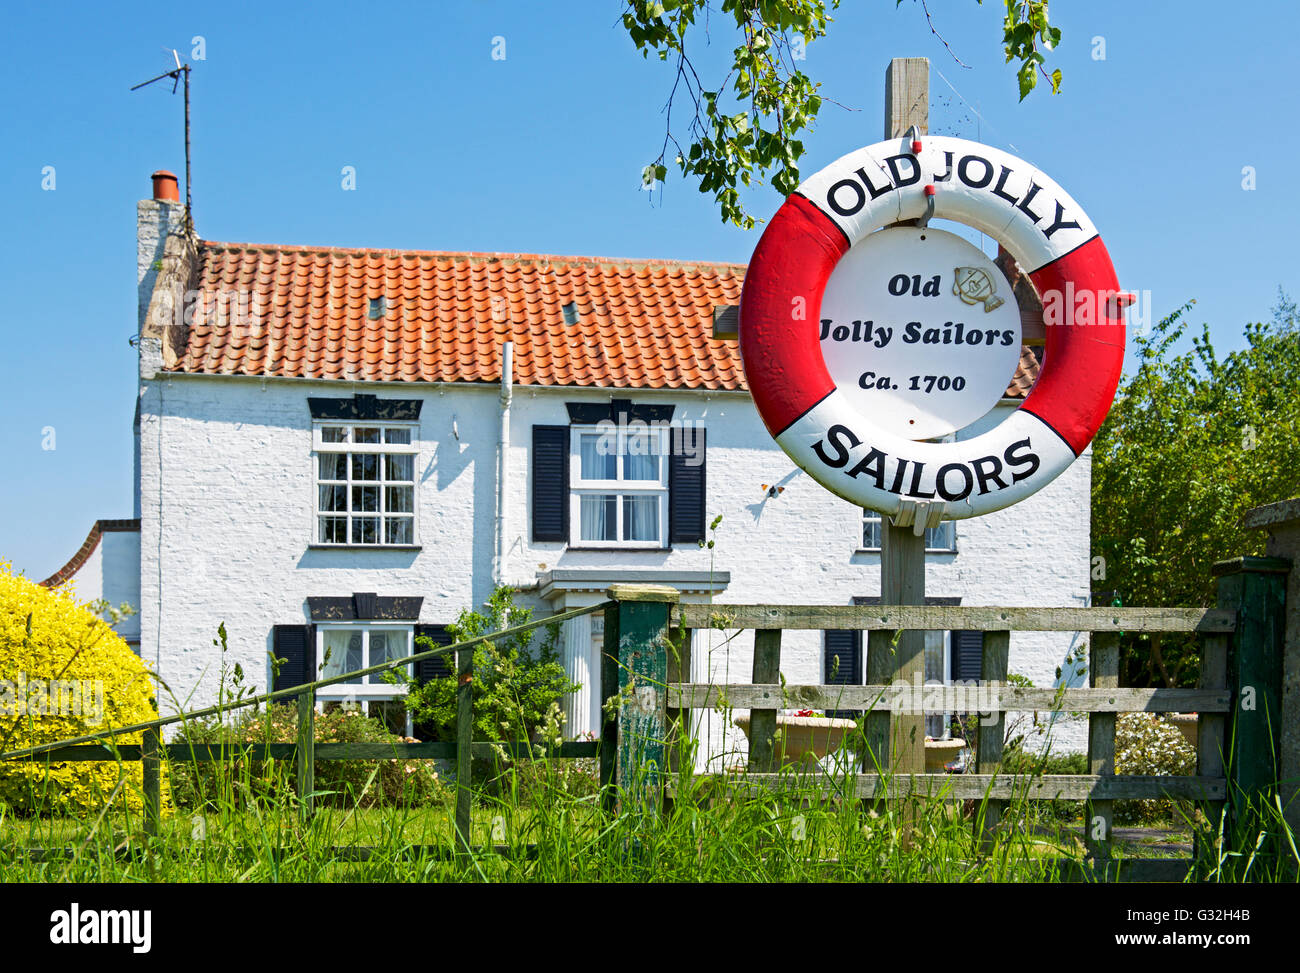 House - once the Jolly Sailor pub - at Fishtoft, near Boston, Lincolnshire, England UK - Stock Image